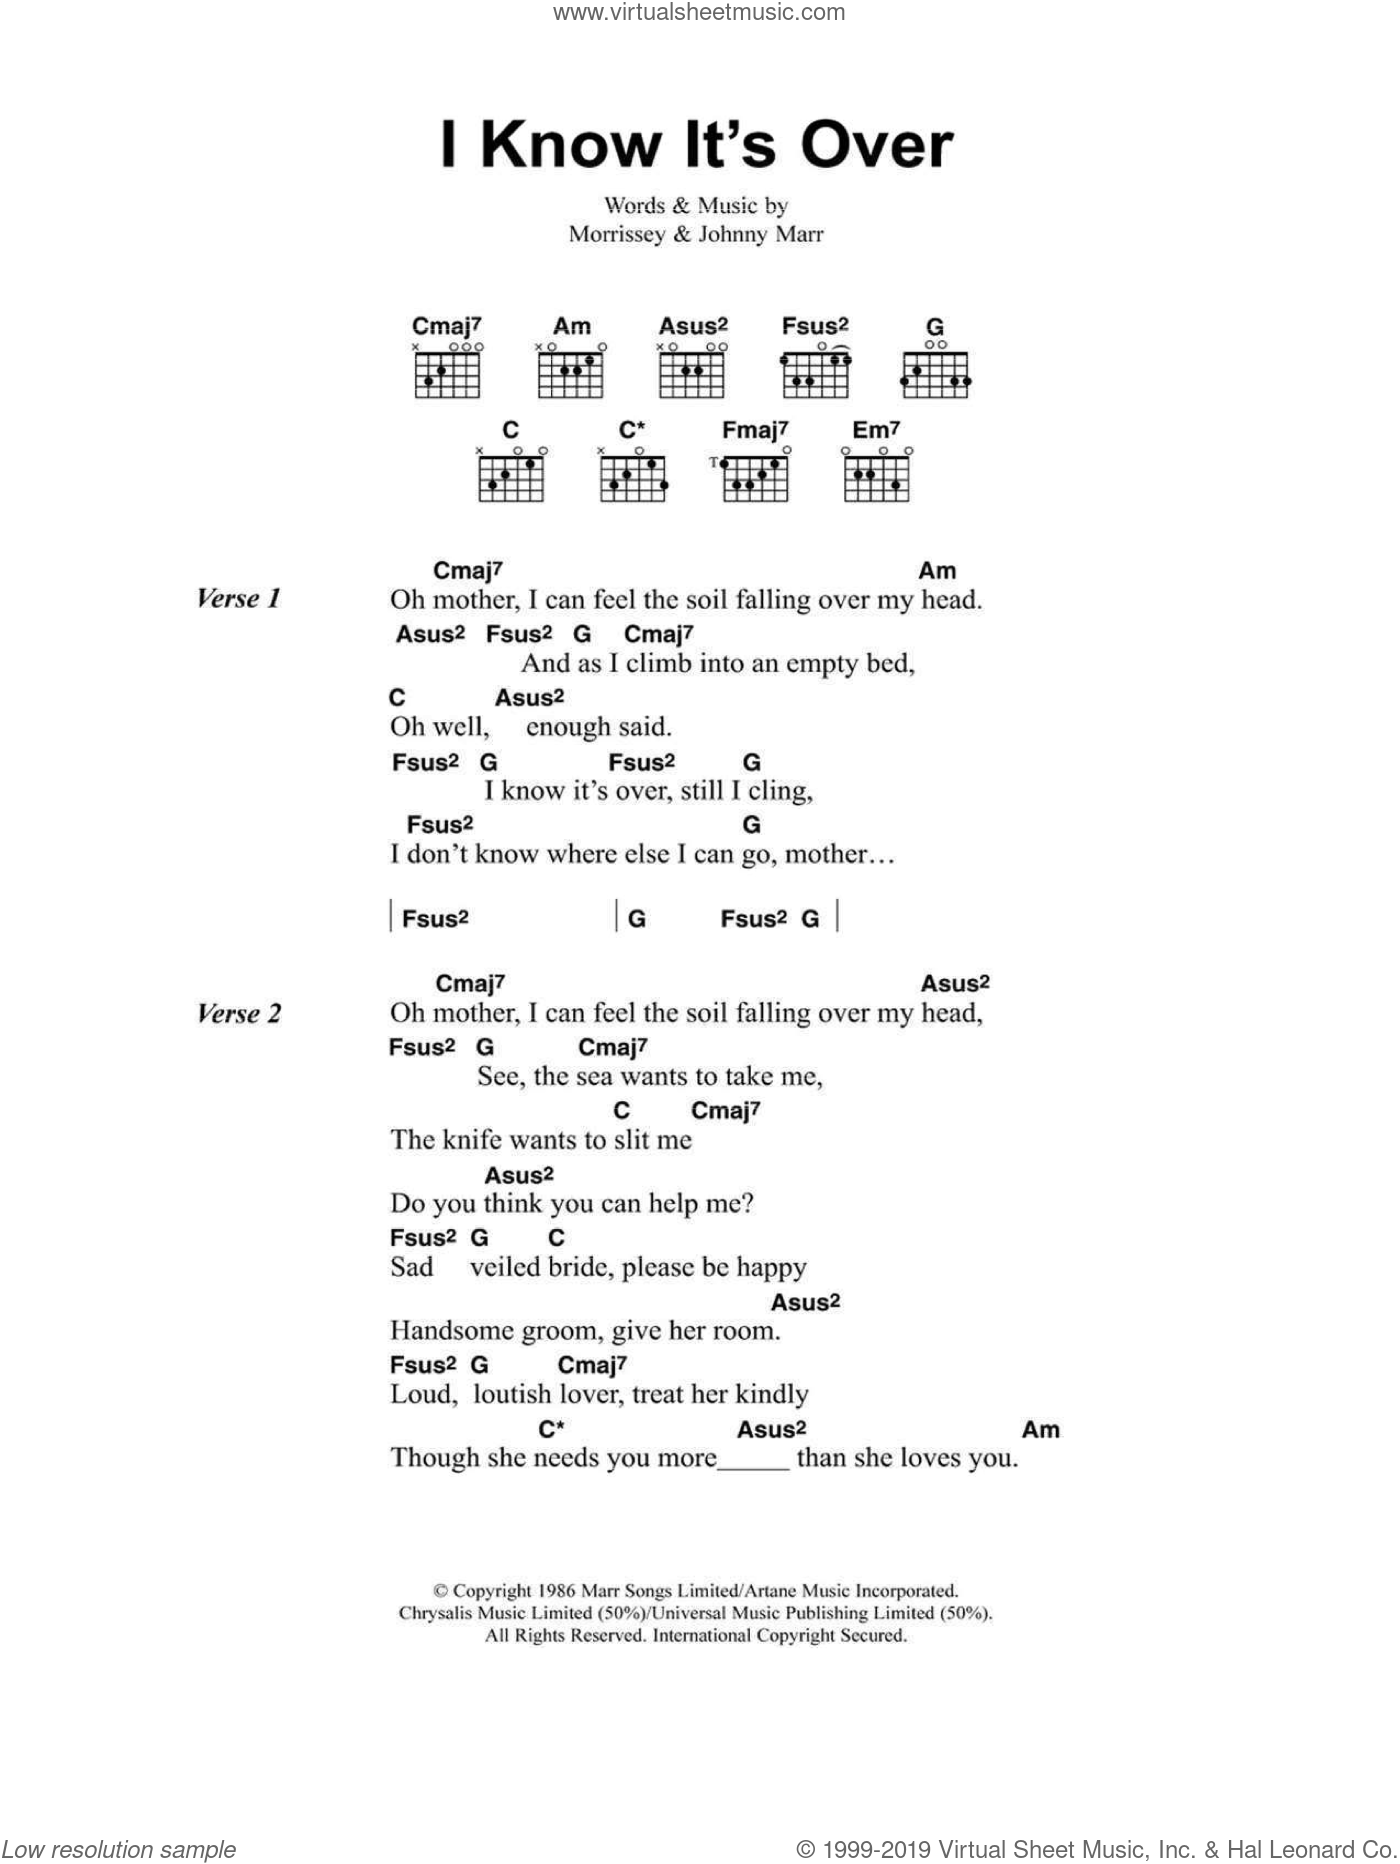 I Know It's Over sheet music for guitar (chords, lyrics, melody) by Steven Morrissey